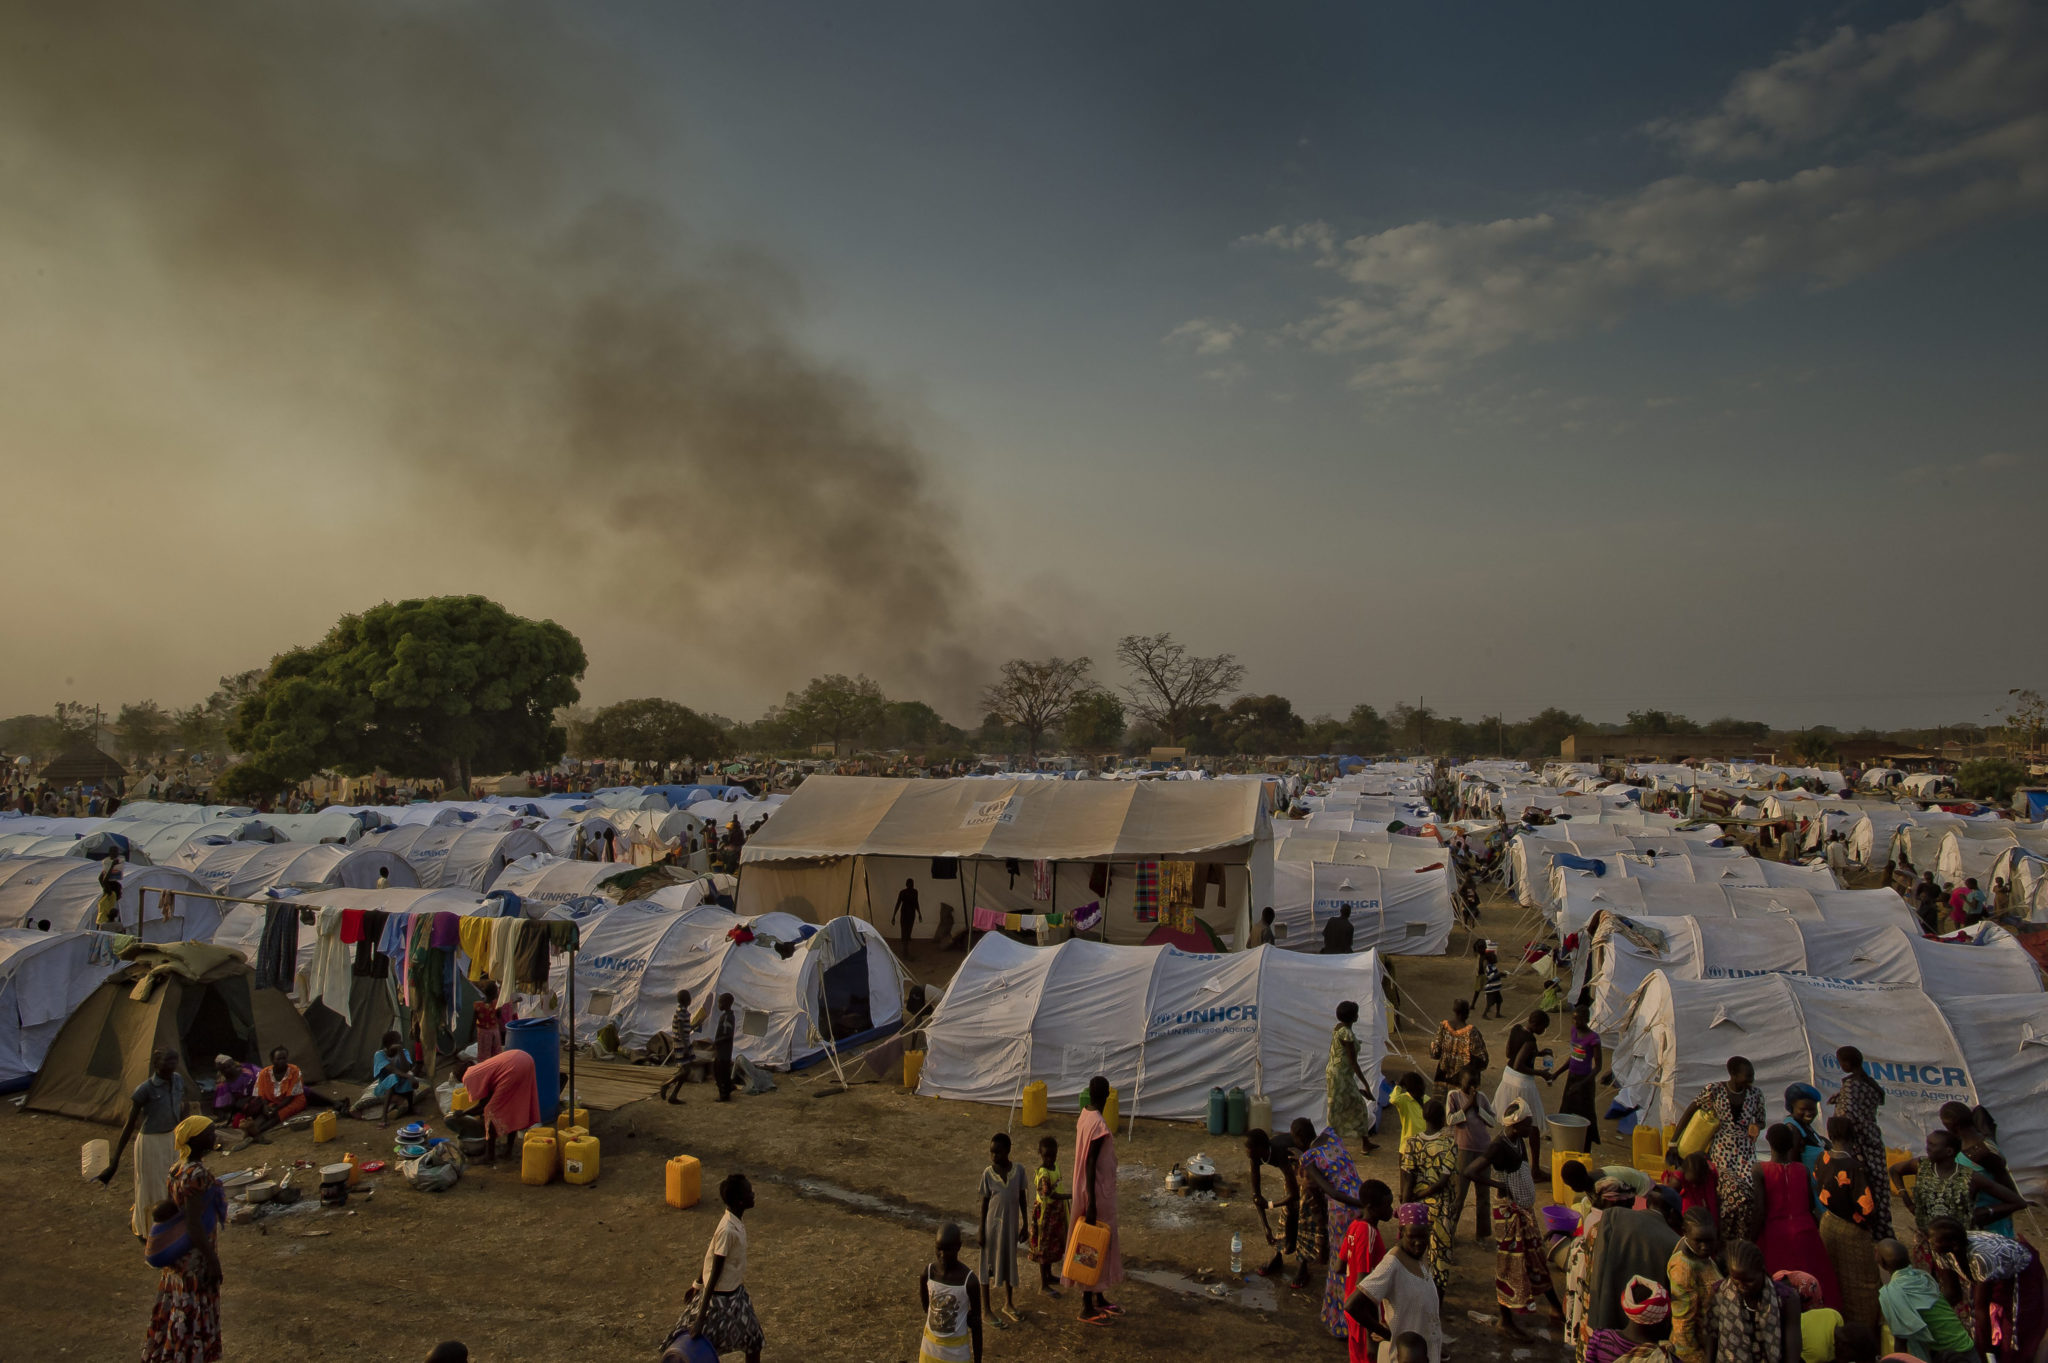 Uganda: International community must avert growing crisis as number of South Sudanese refugees reaches a million